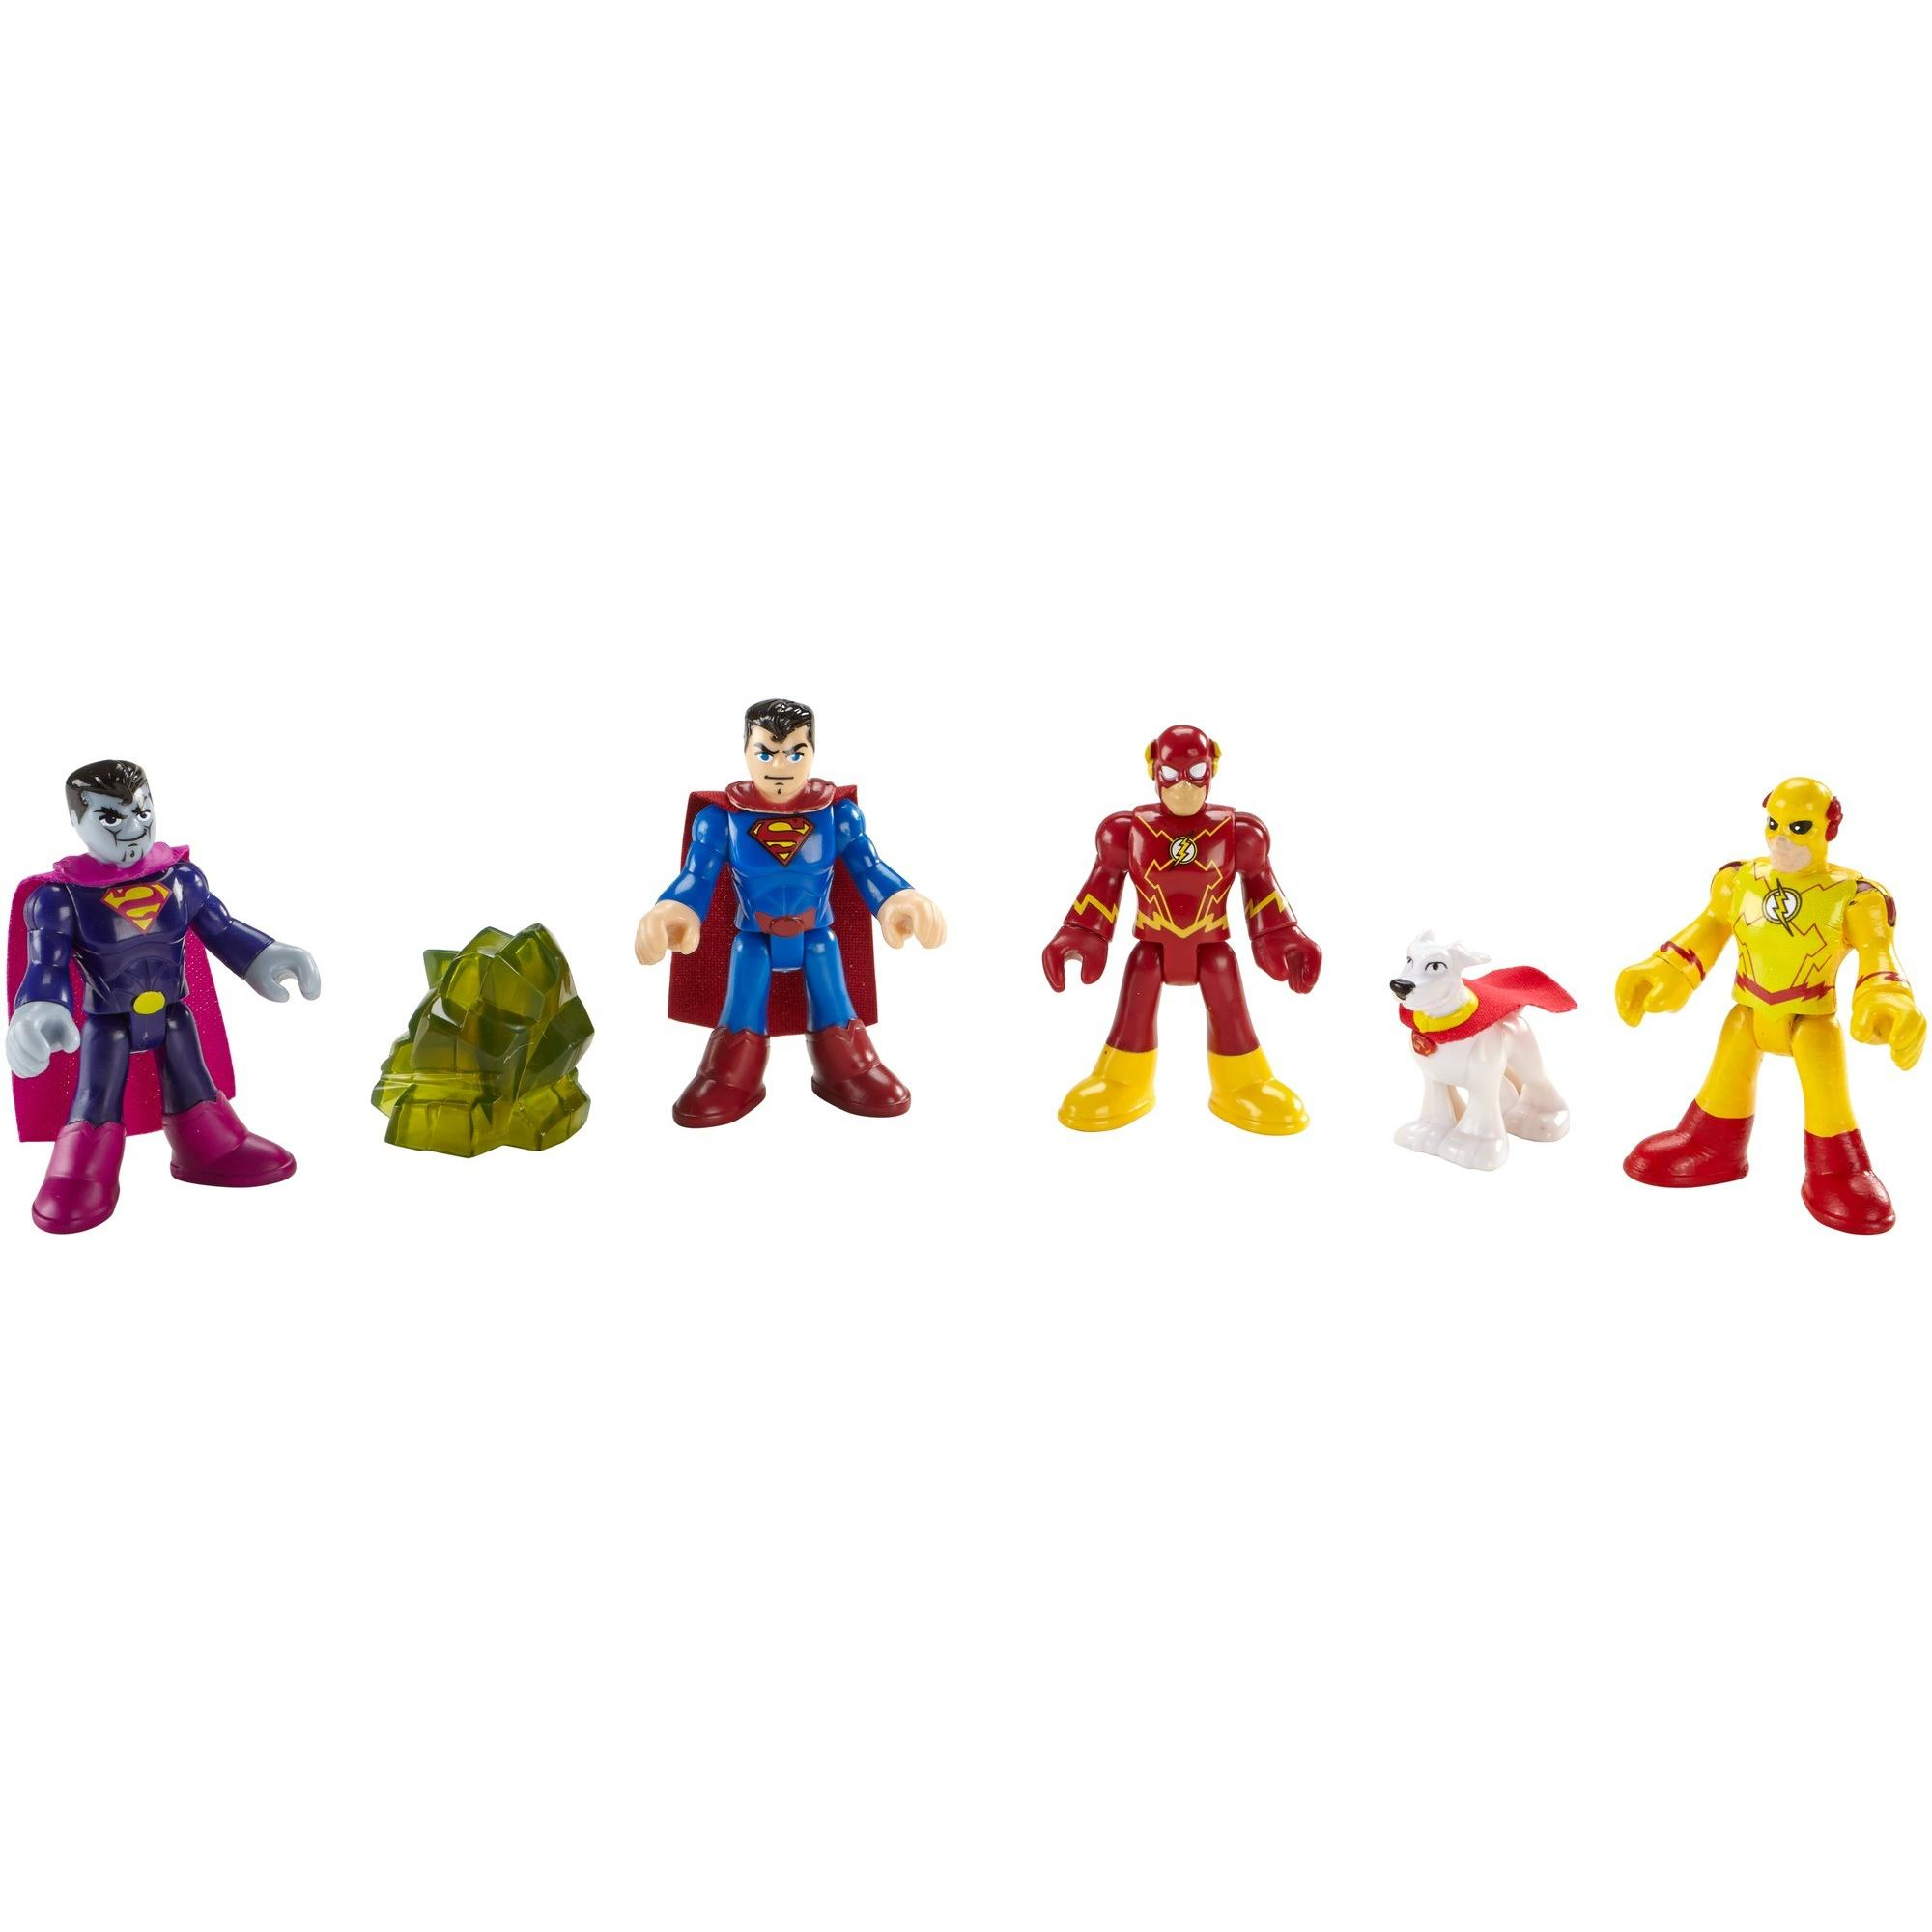 Imaginext DC Super Friends Heros and Villains